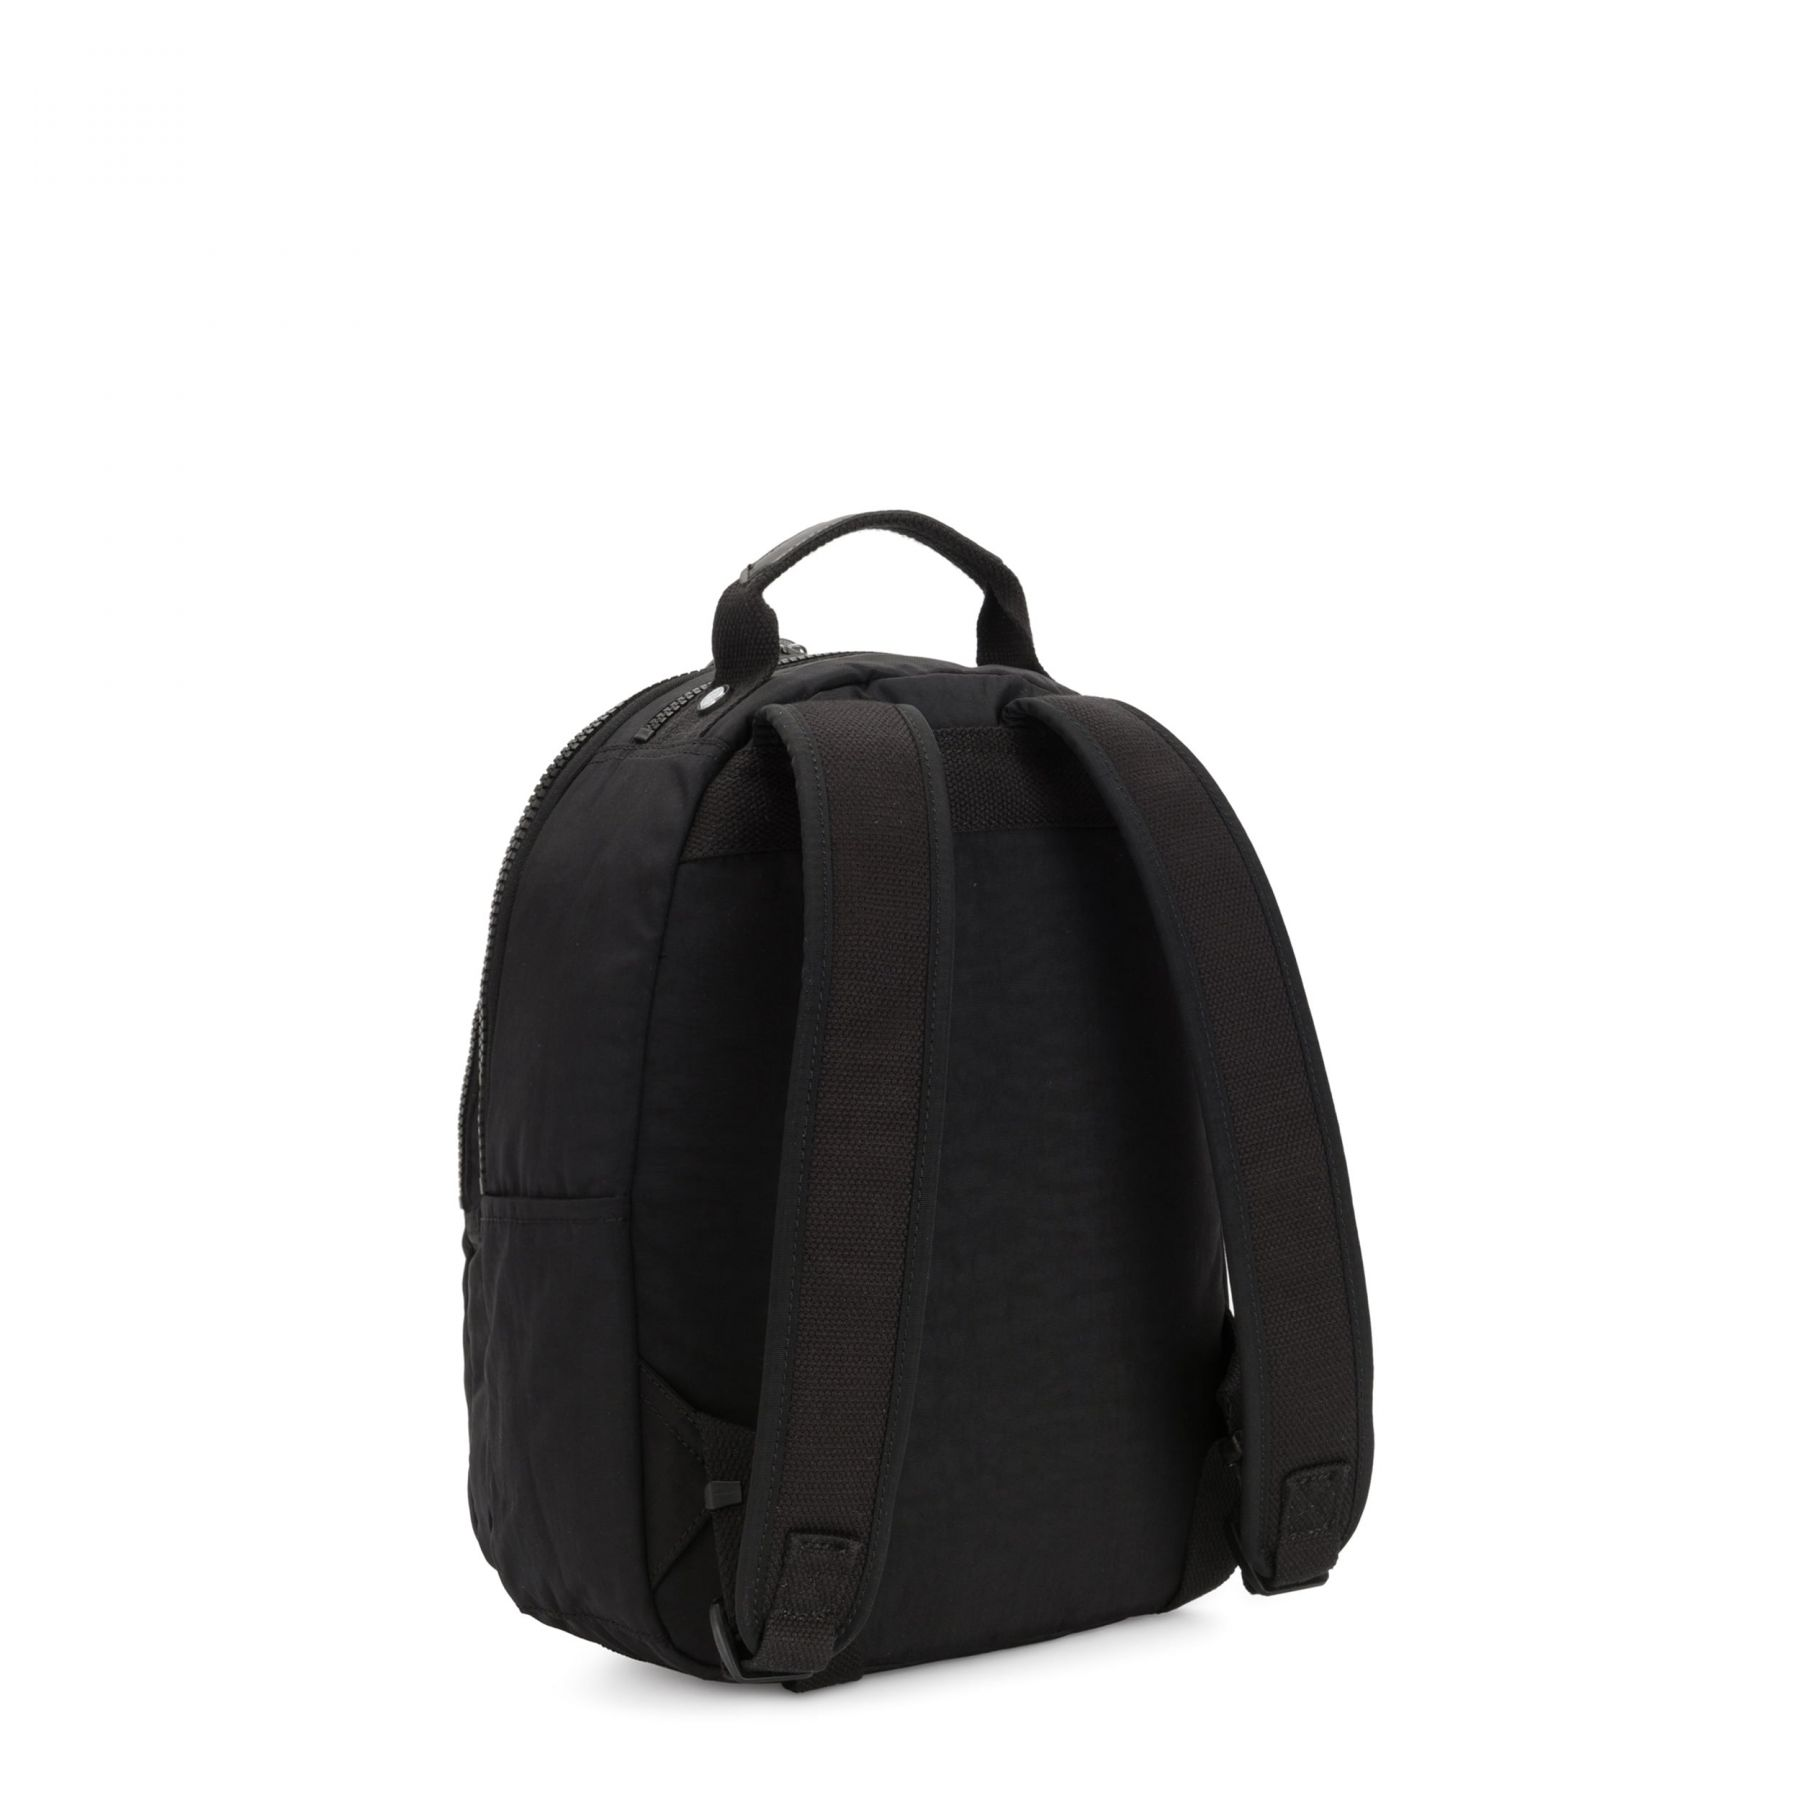 SEOUL S Latest Backpacks by Kipling - Back view